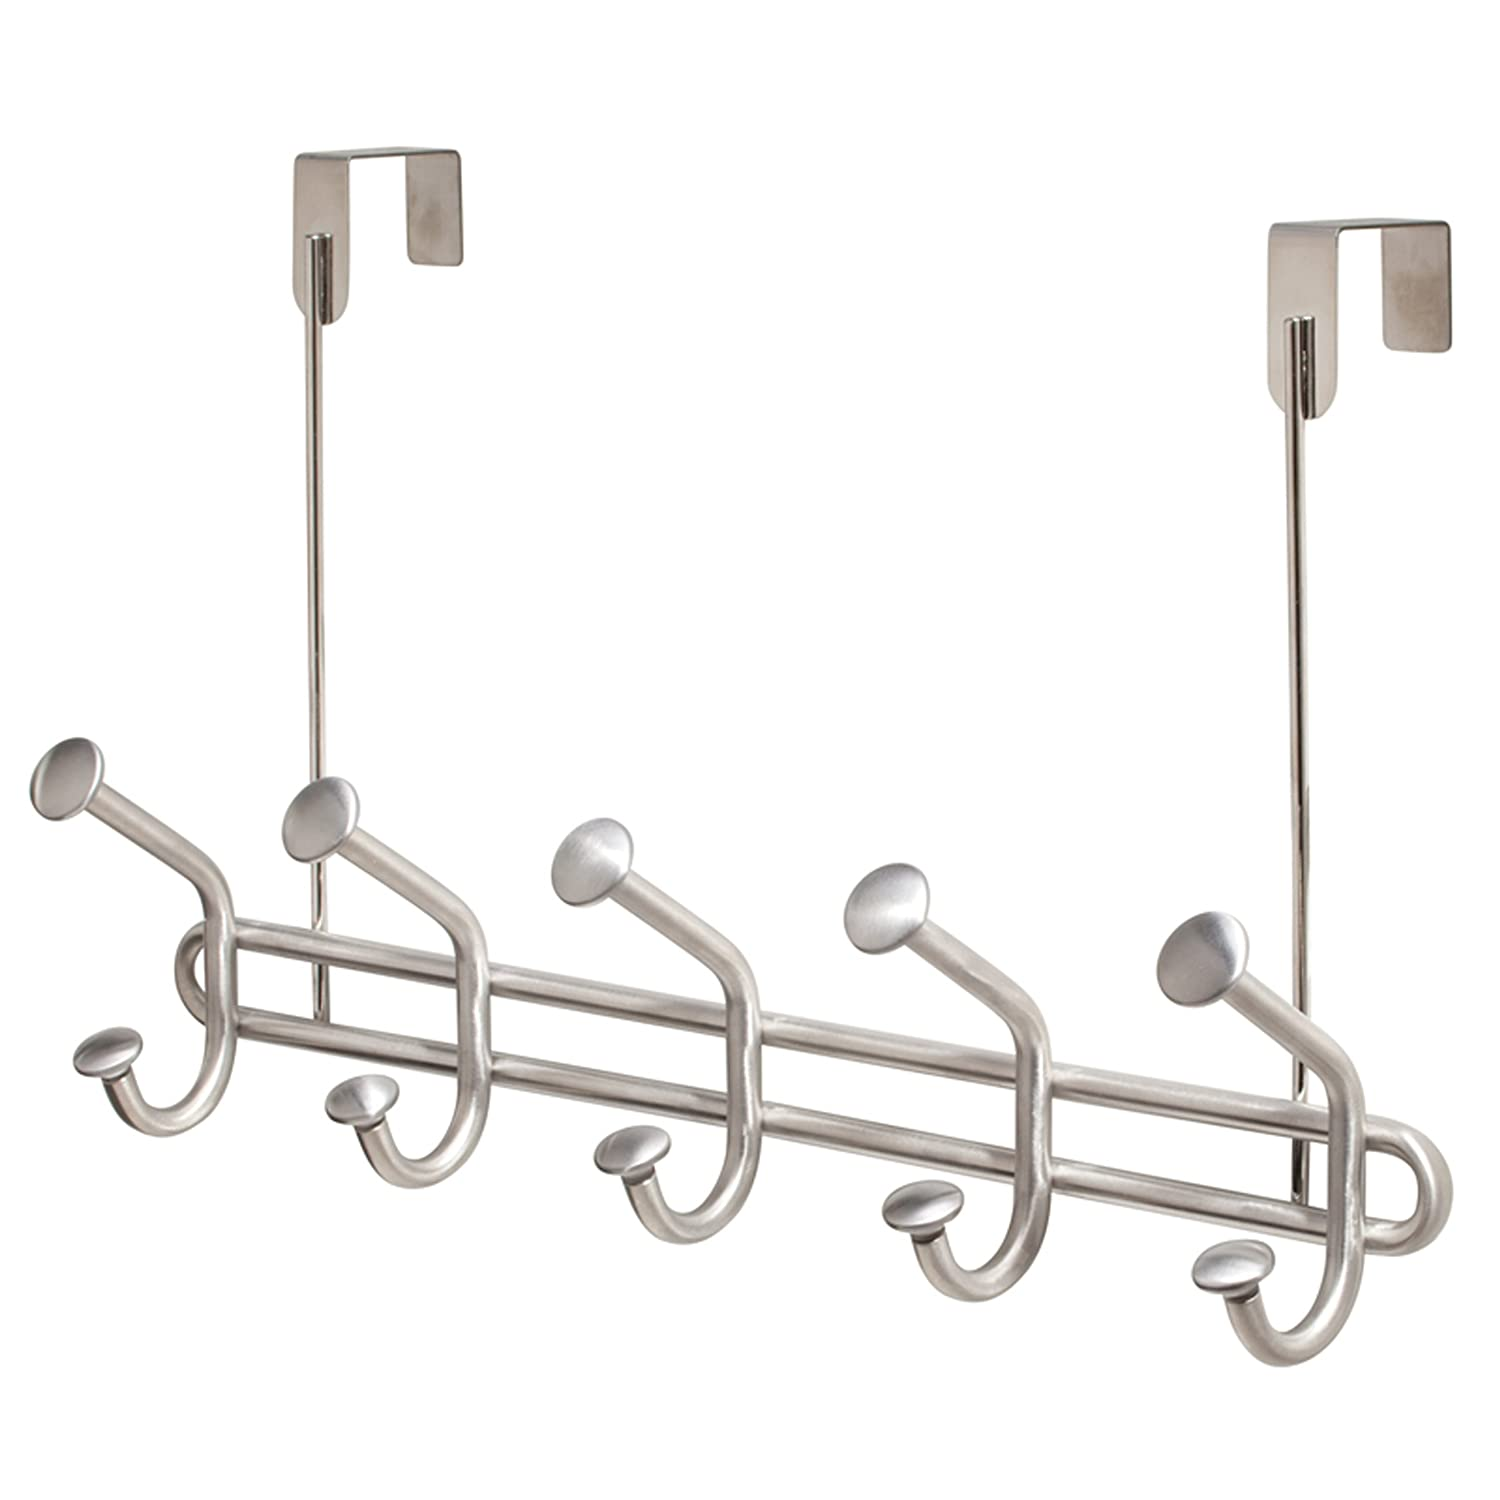 InterDesign Forma Ultra Over the Door Organizer Hooks for Coats, Hats, Robes, Towels - 6 Hooks, Brushed Stainless 80060